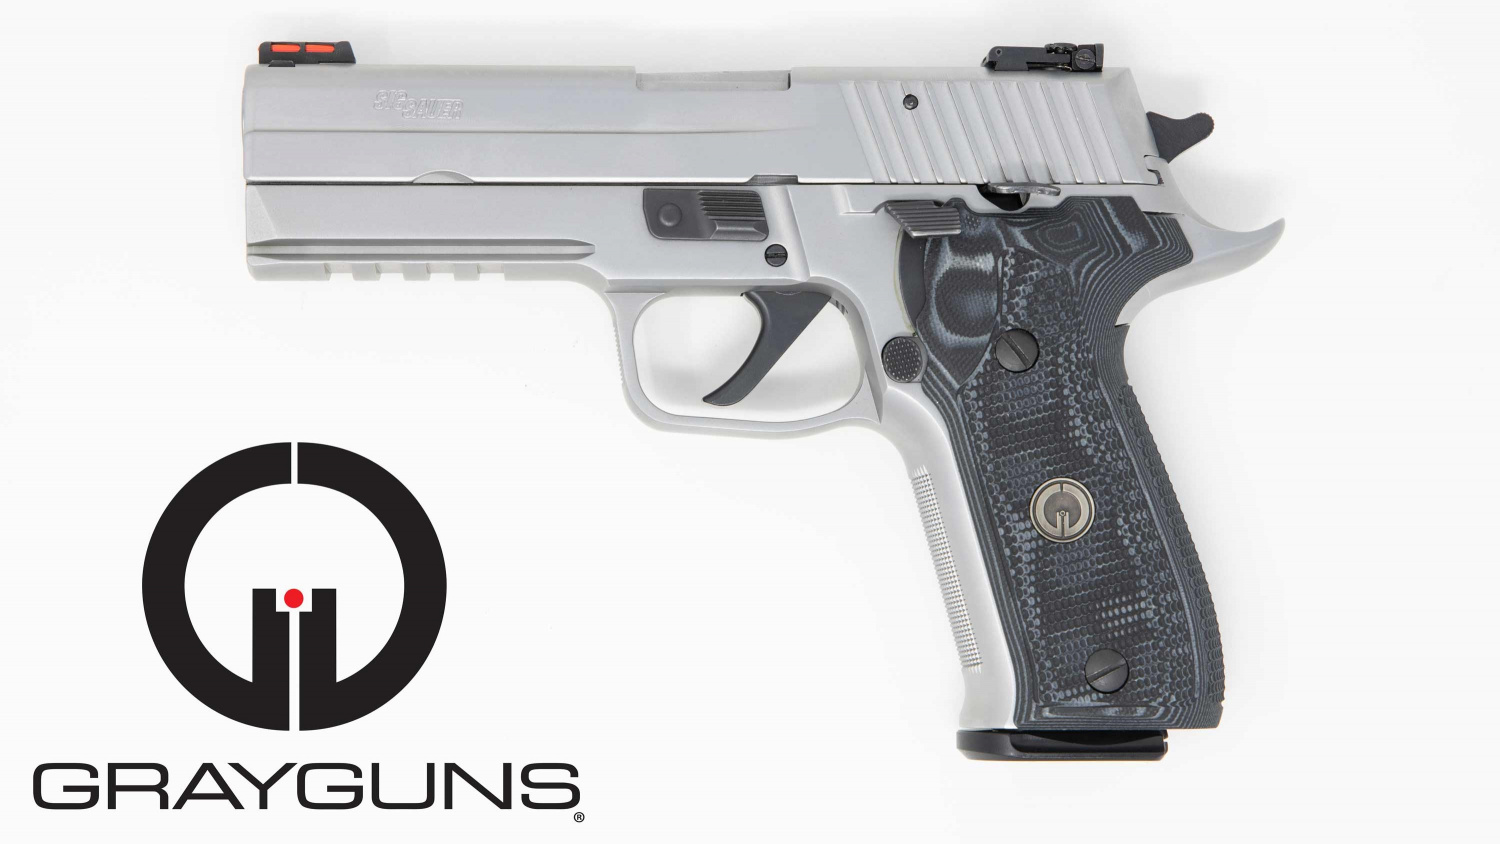 Grayguns Hybrid Double Action.